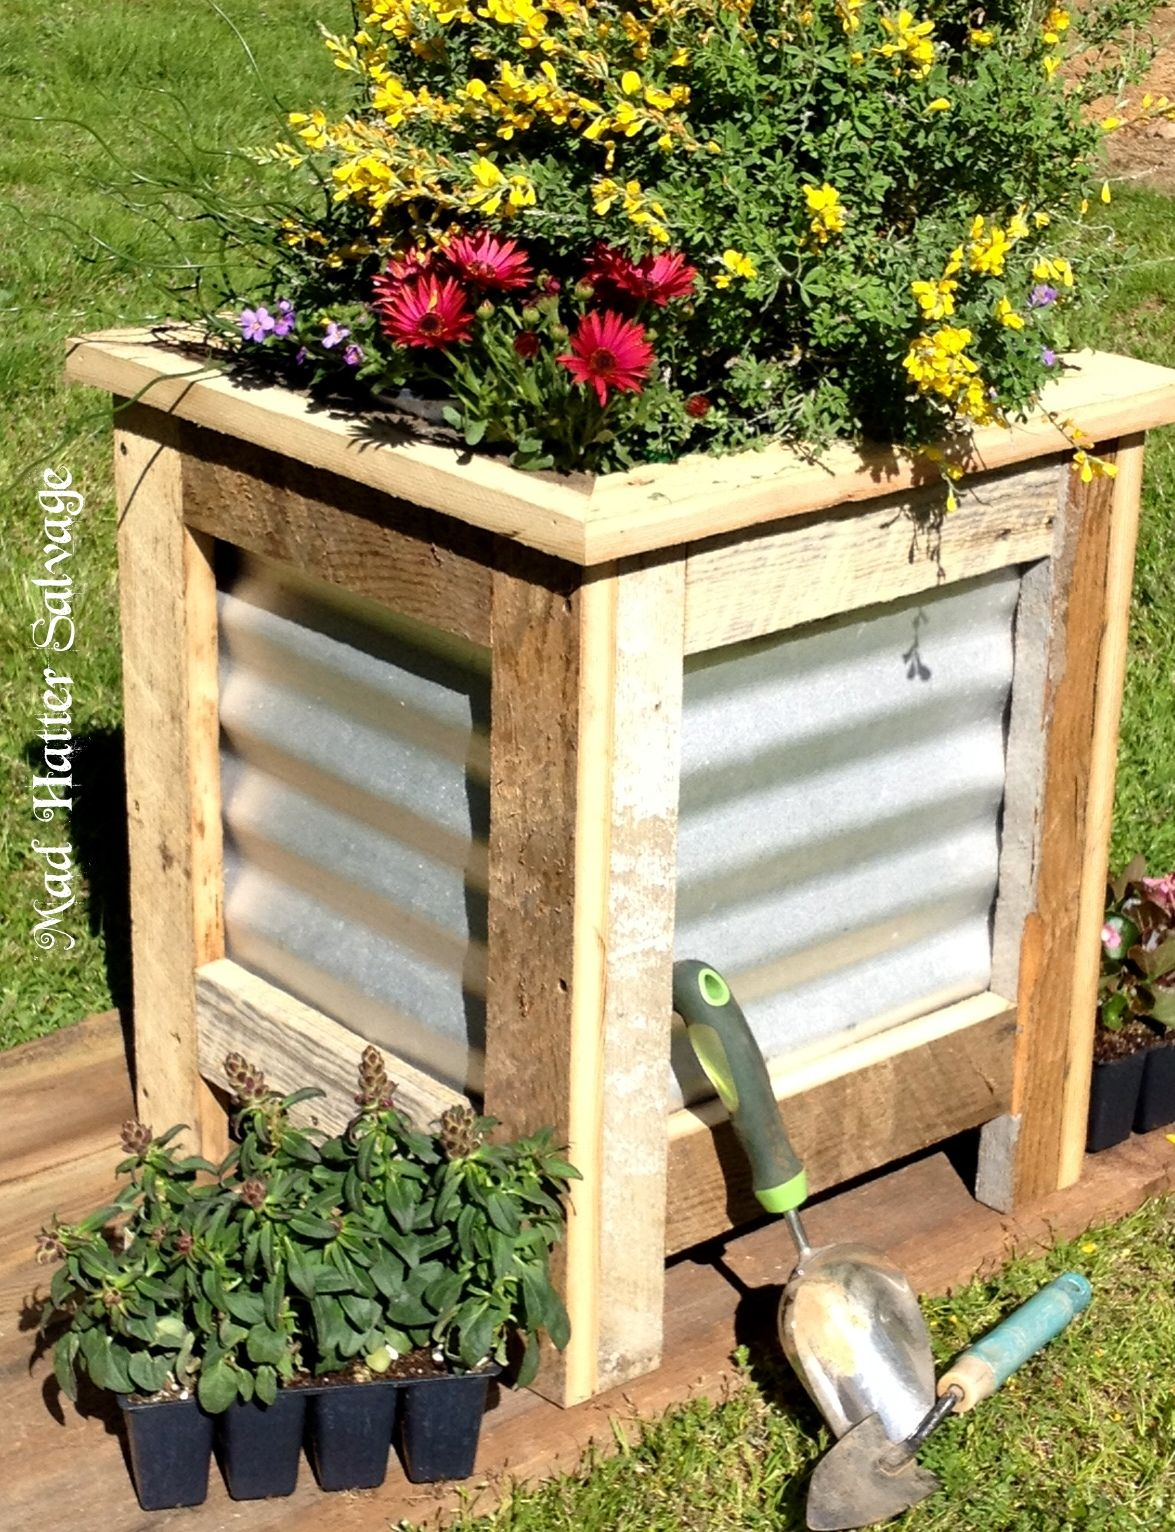 Reclaimed Lumber and Metal Roofing Planter Box - & Reclaimed Lumber and Metal Roofing Planter Box - | Reclaimed ... memphite.com